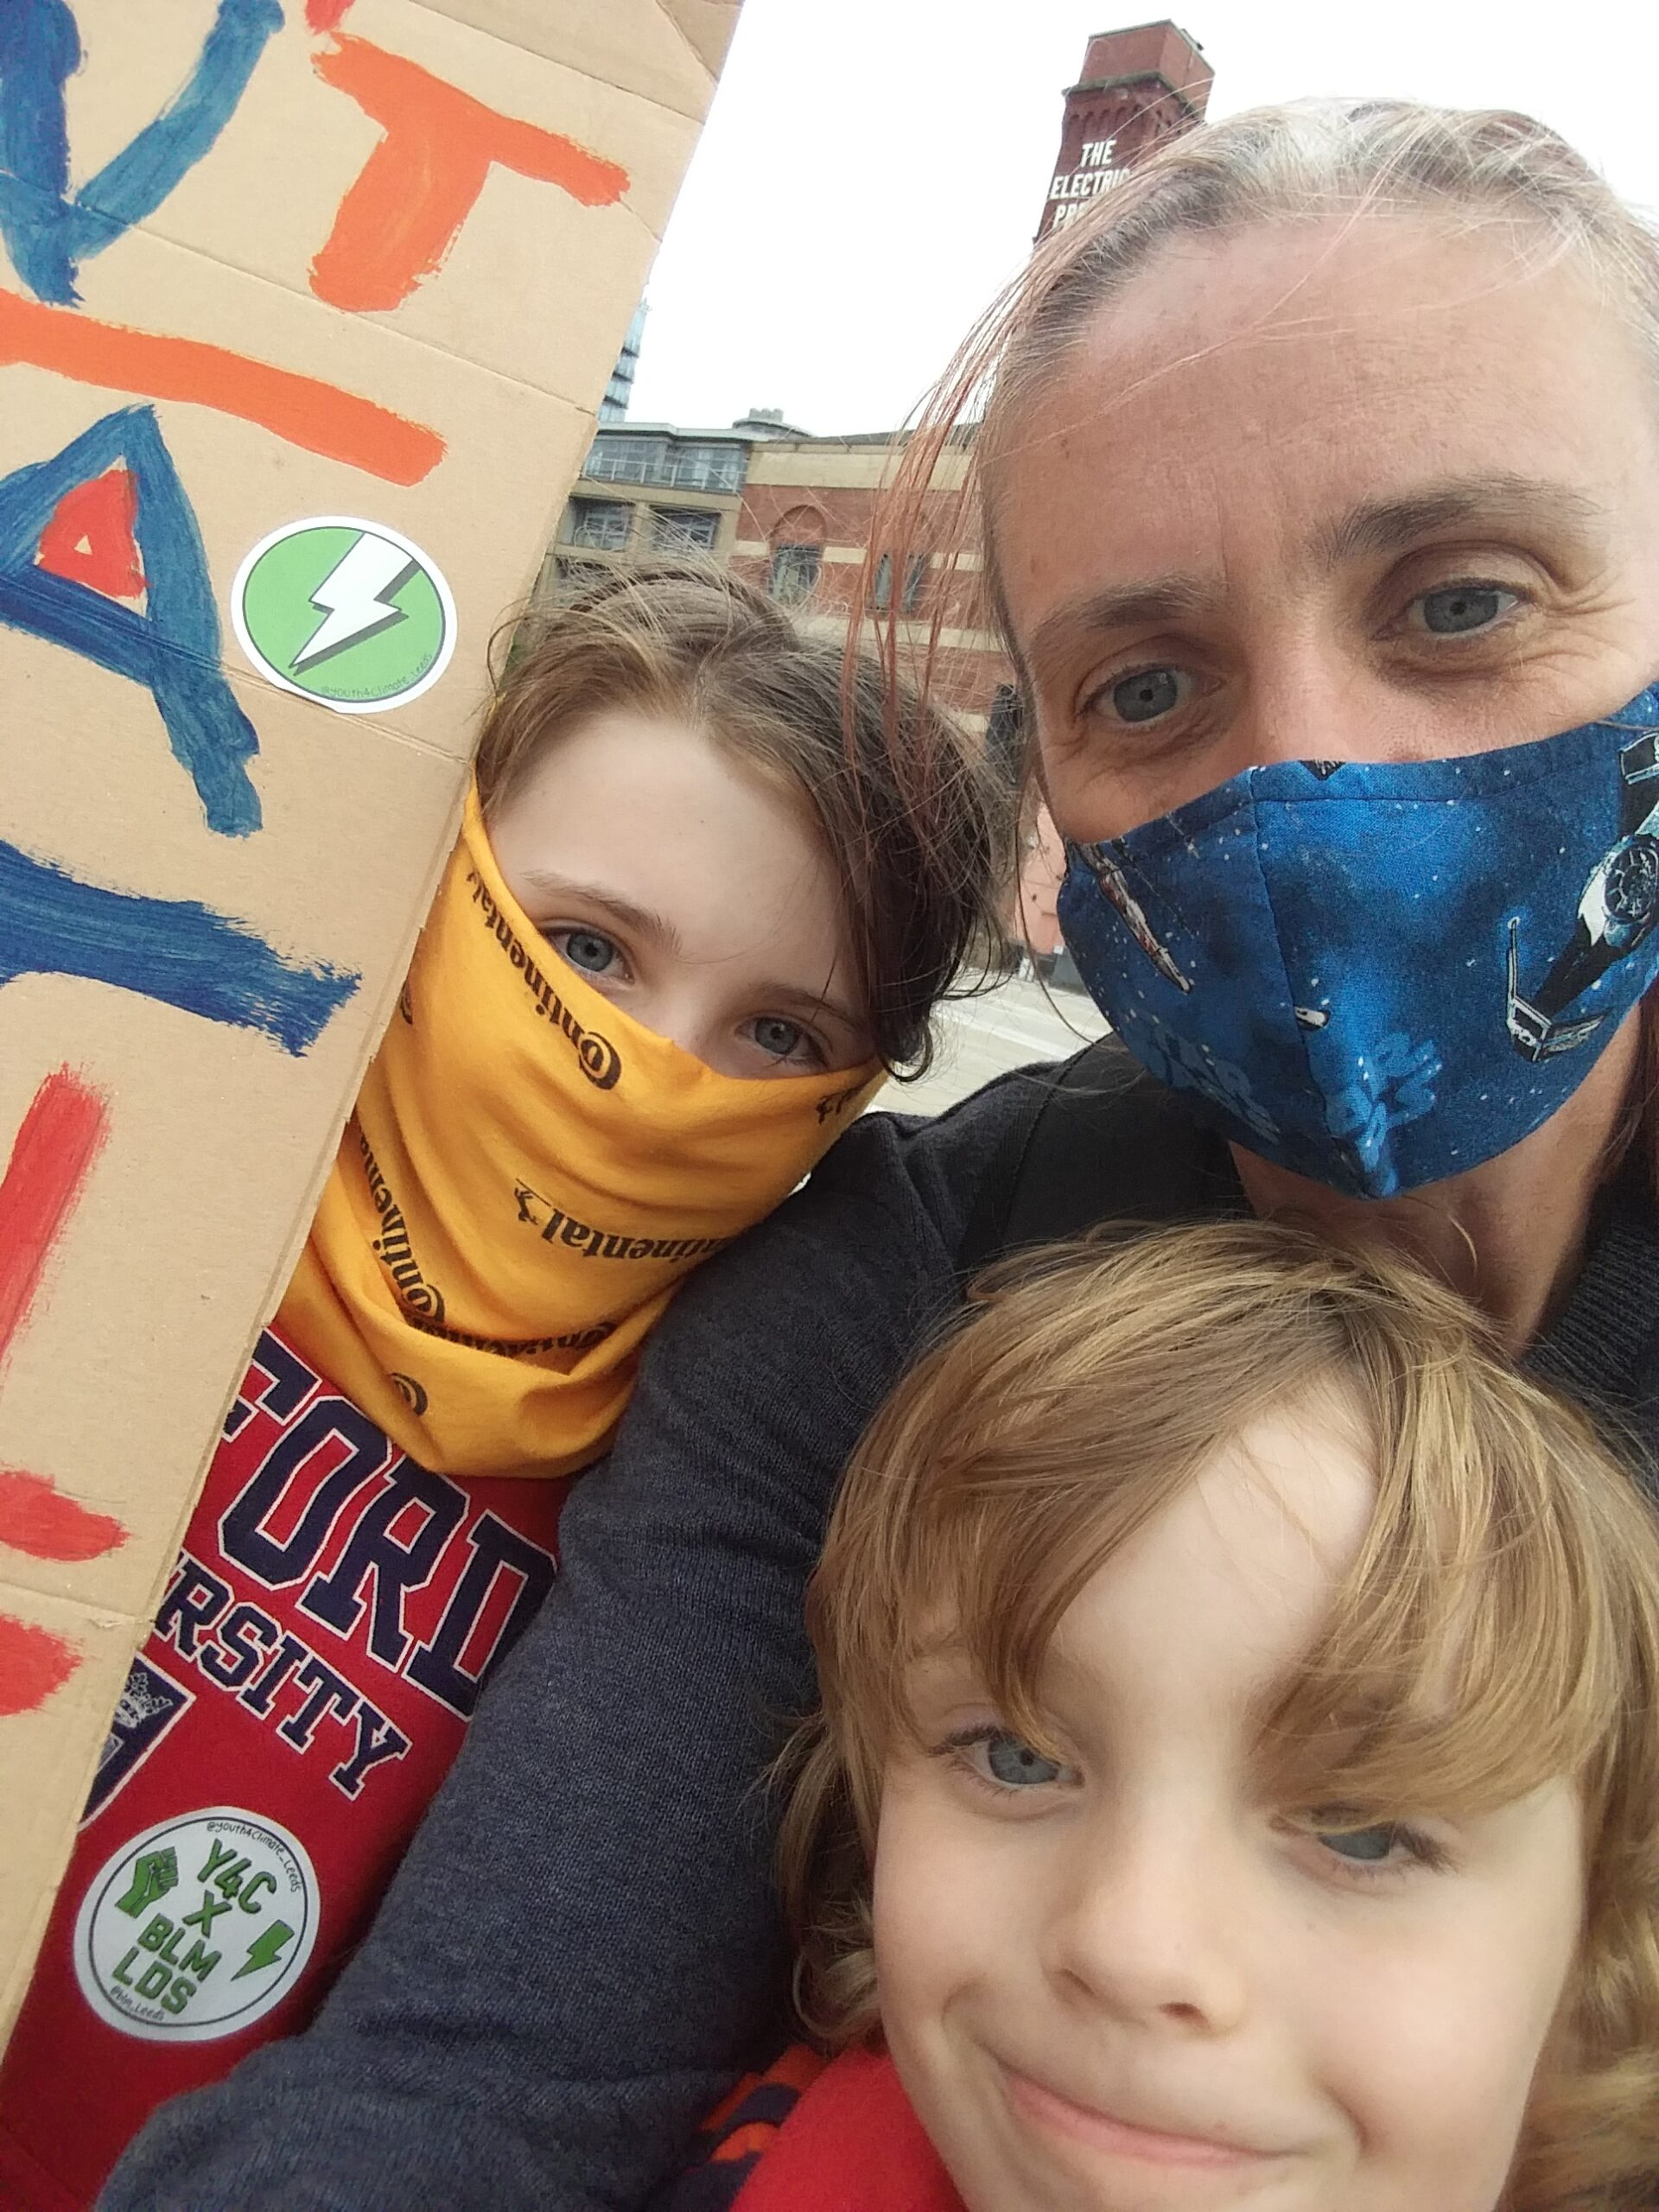 Family at climate protest